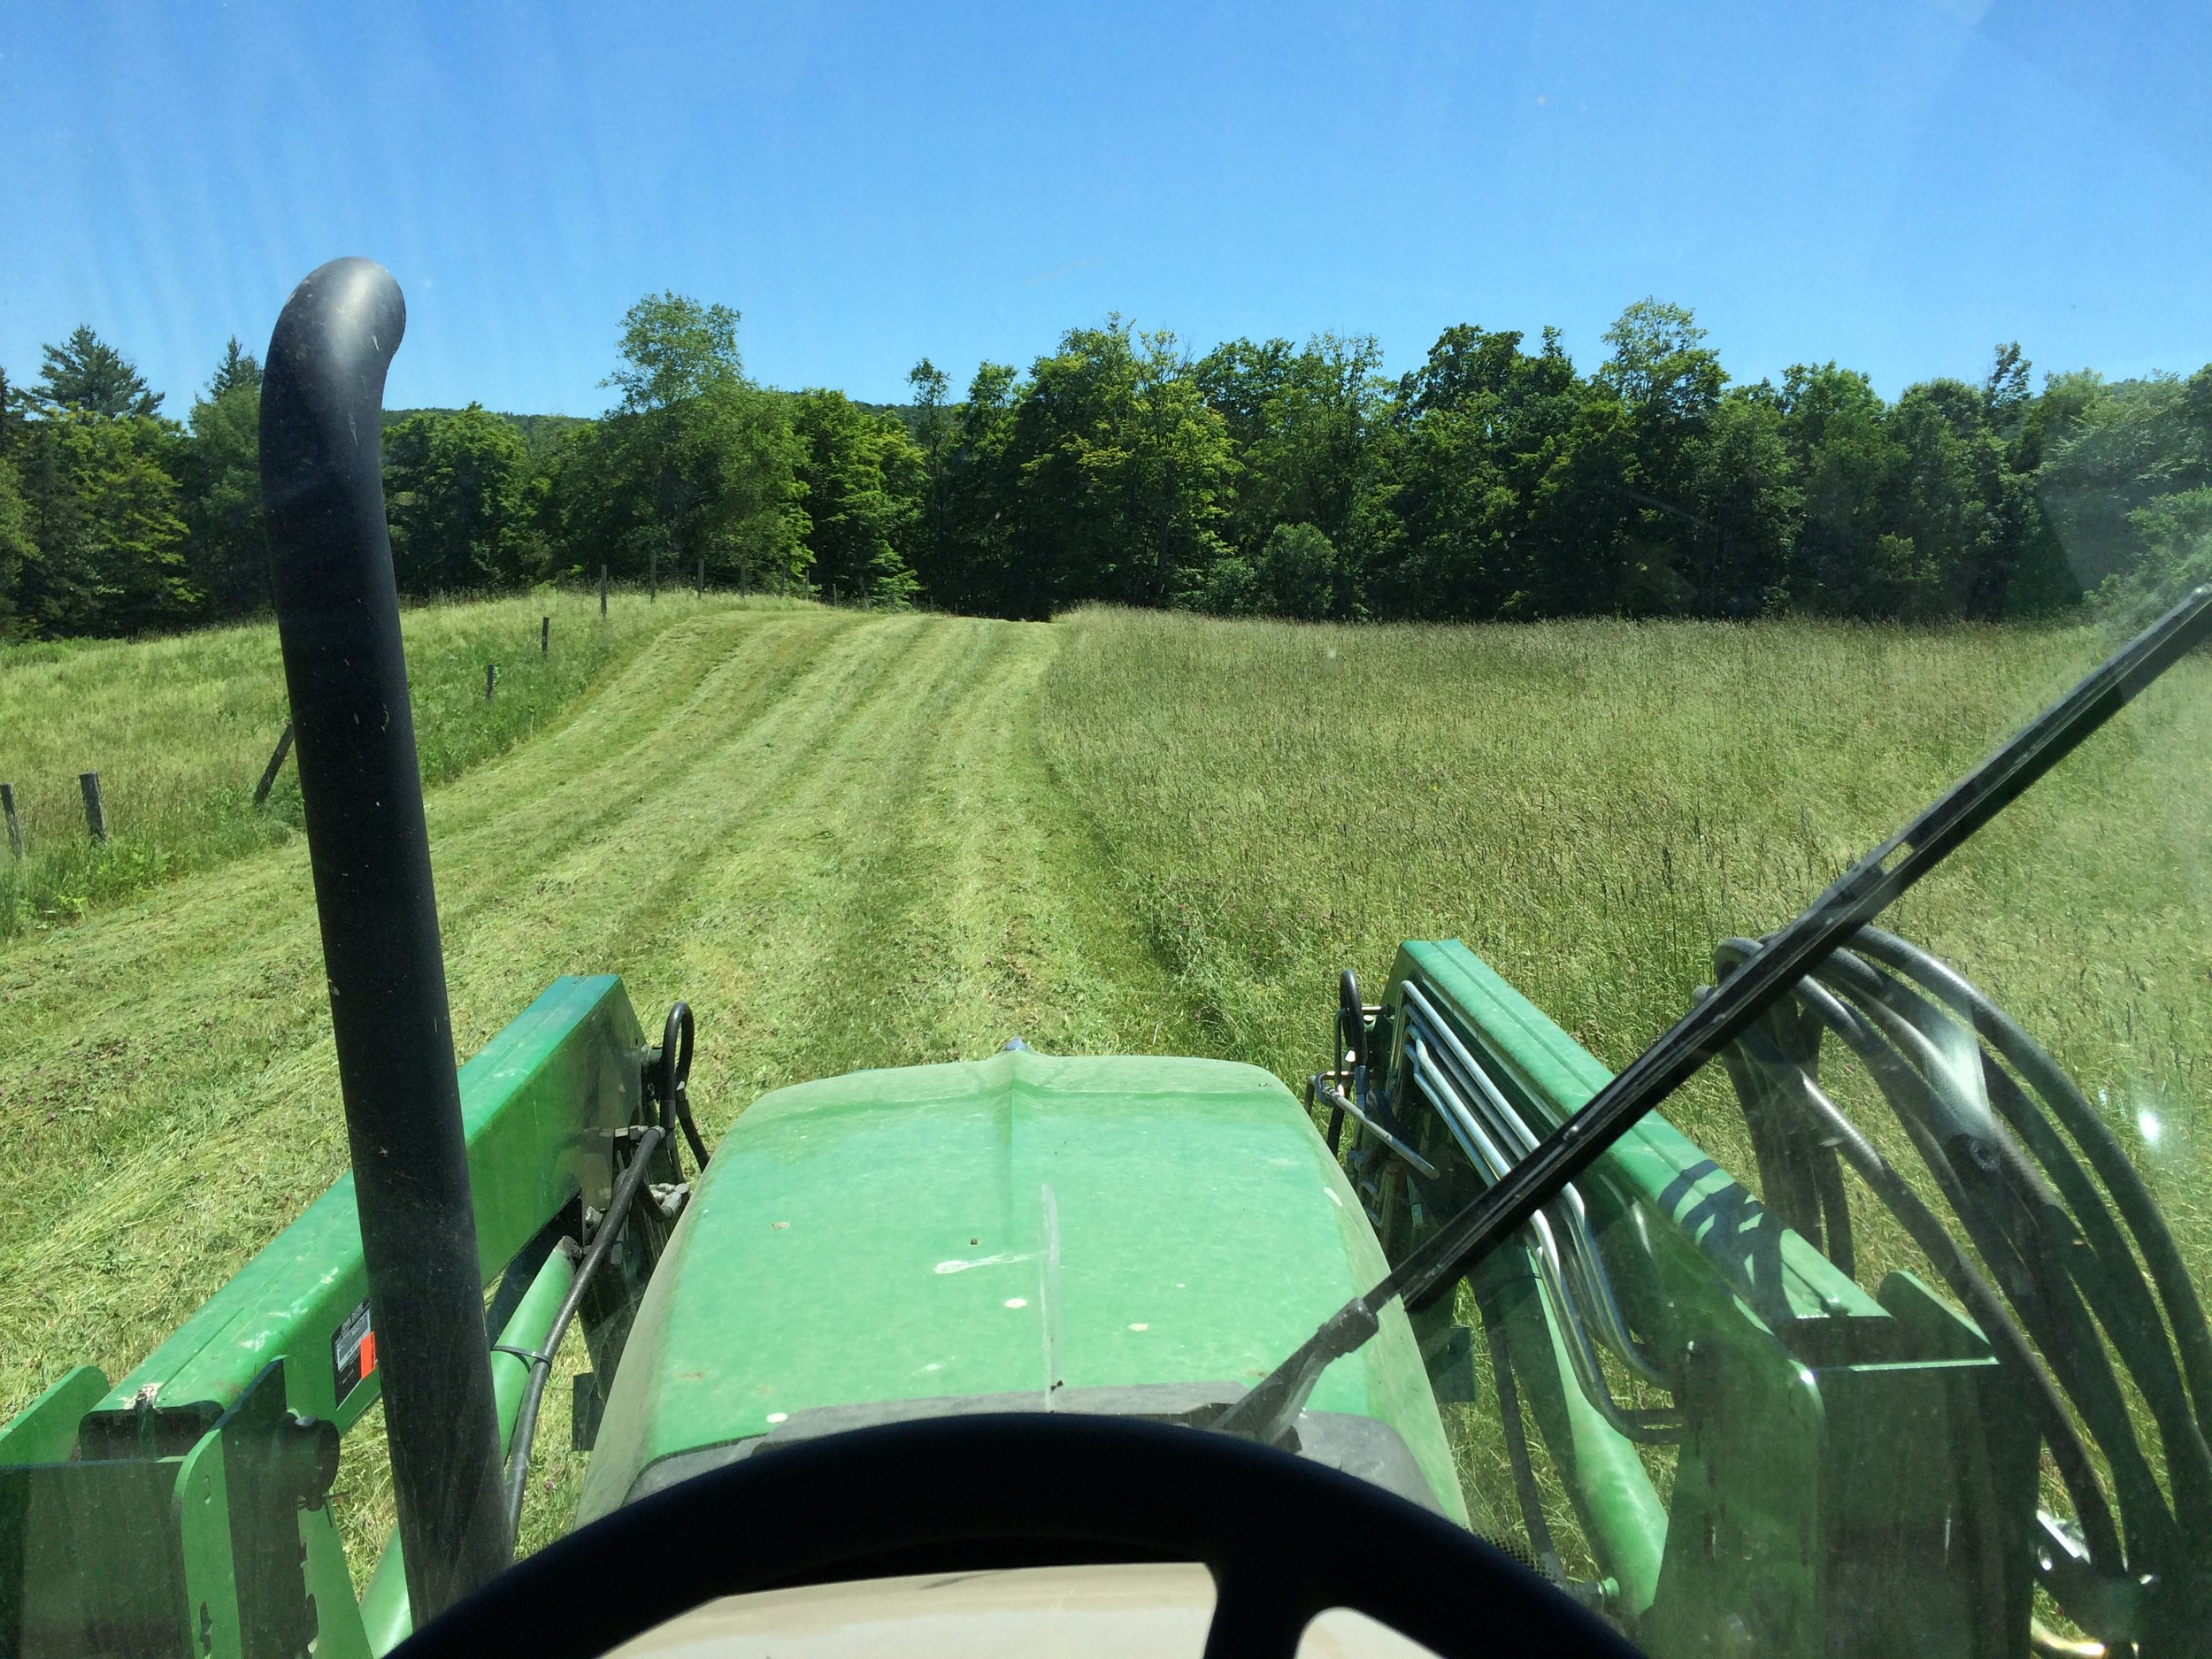 So we mow down the hay fields in summer.